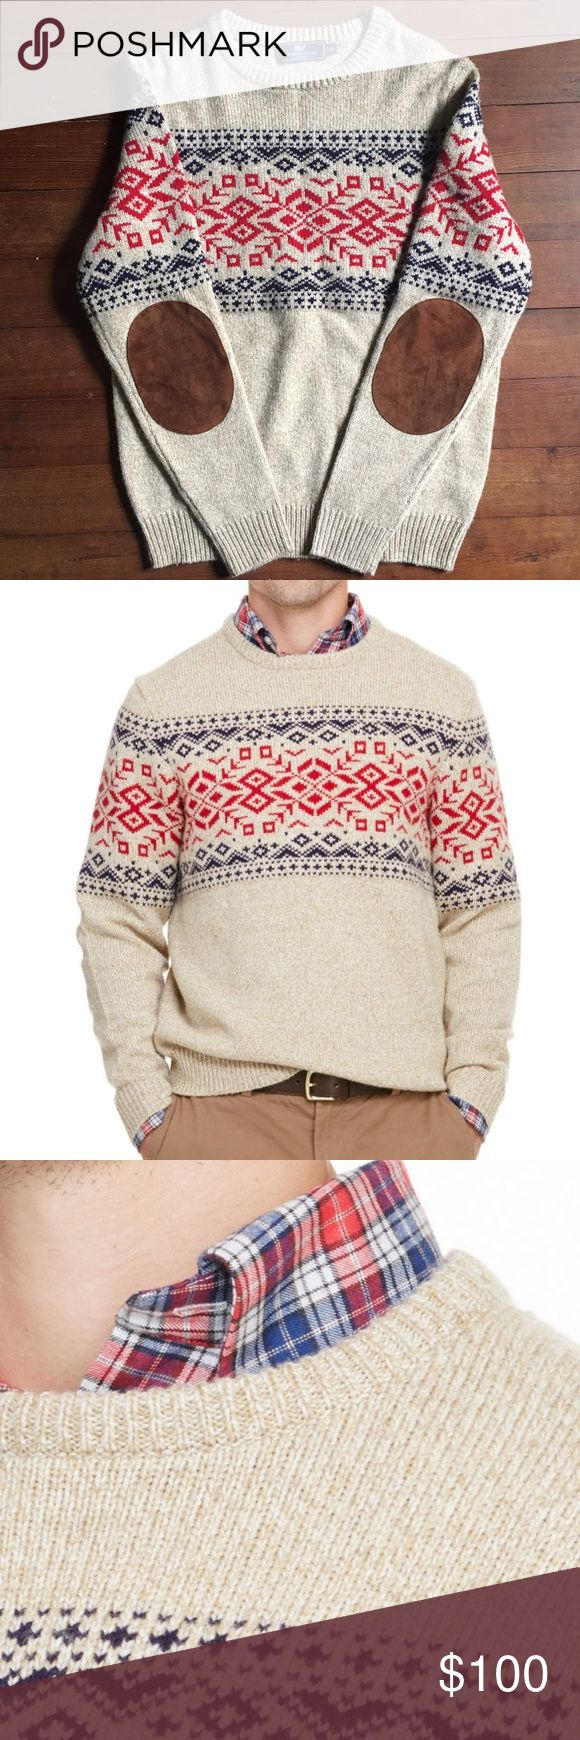 Vineyard Vines Rag Fair Isle Sweater 🎉HP🎉This Rag Fair Isle Sweater with elbow pads from vineyard vines is perfect for those chilly nights! This sweater has never been worn!  Fabrics: · 40% merino wool, 30% acrylic, 15% vicose, 15% nylon  Features: · Rib trim on cuffs and collar · Imported   Care Instructions: · Dry clean only Vineyard Vines Sweaters